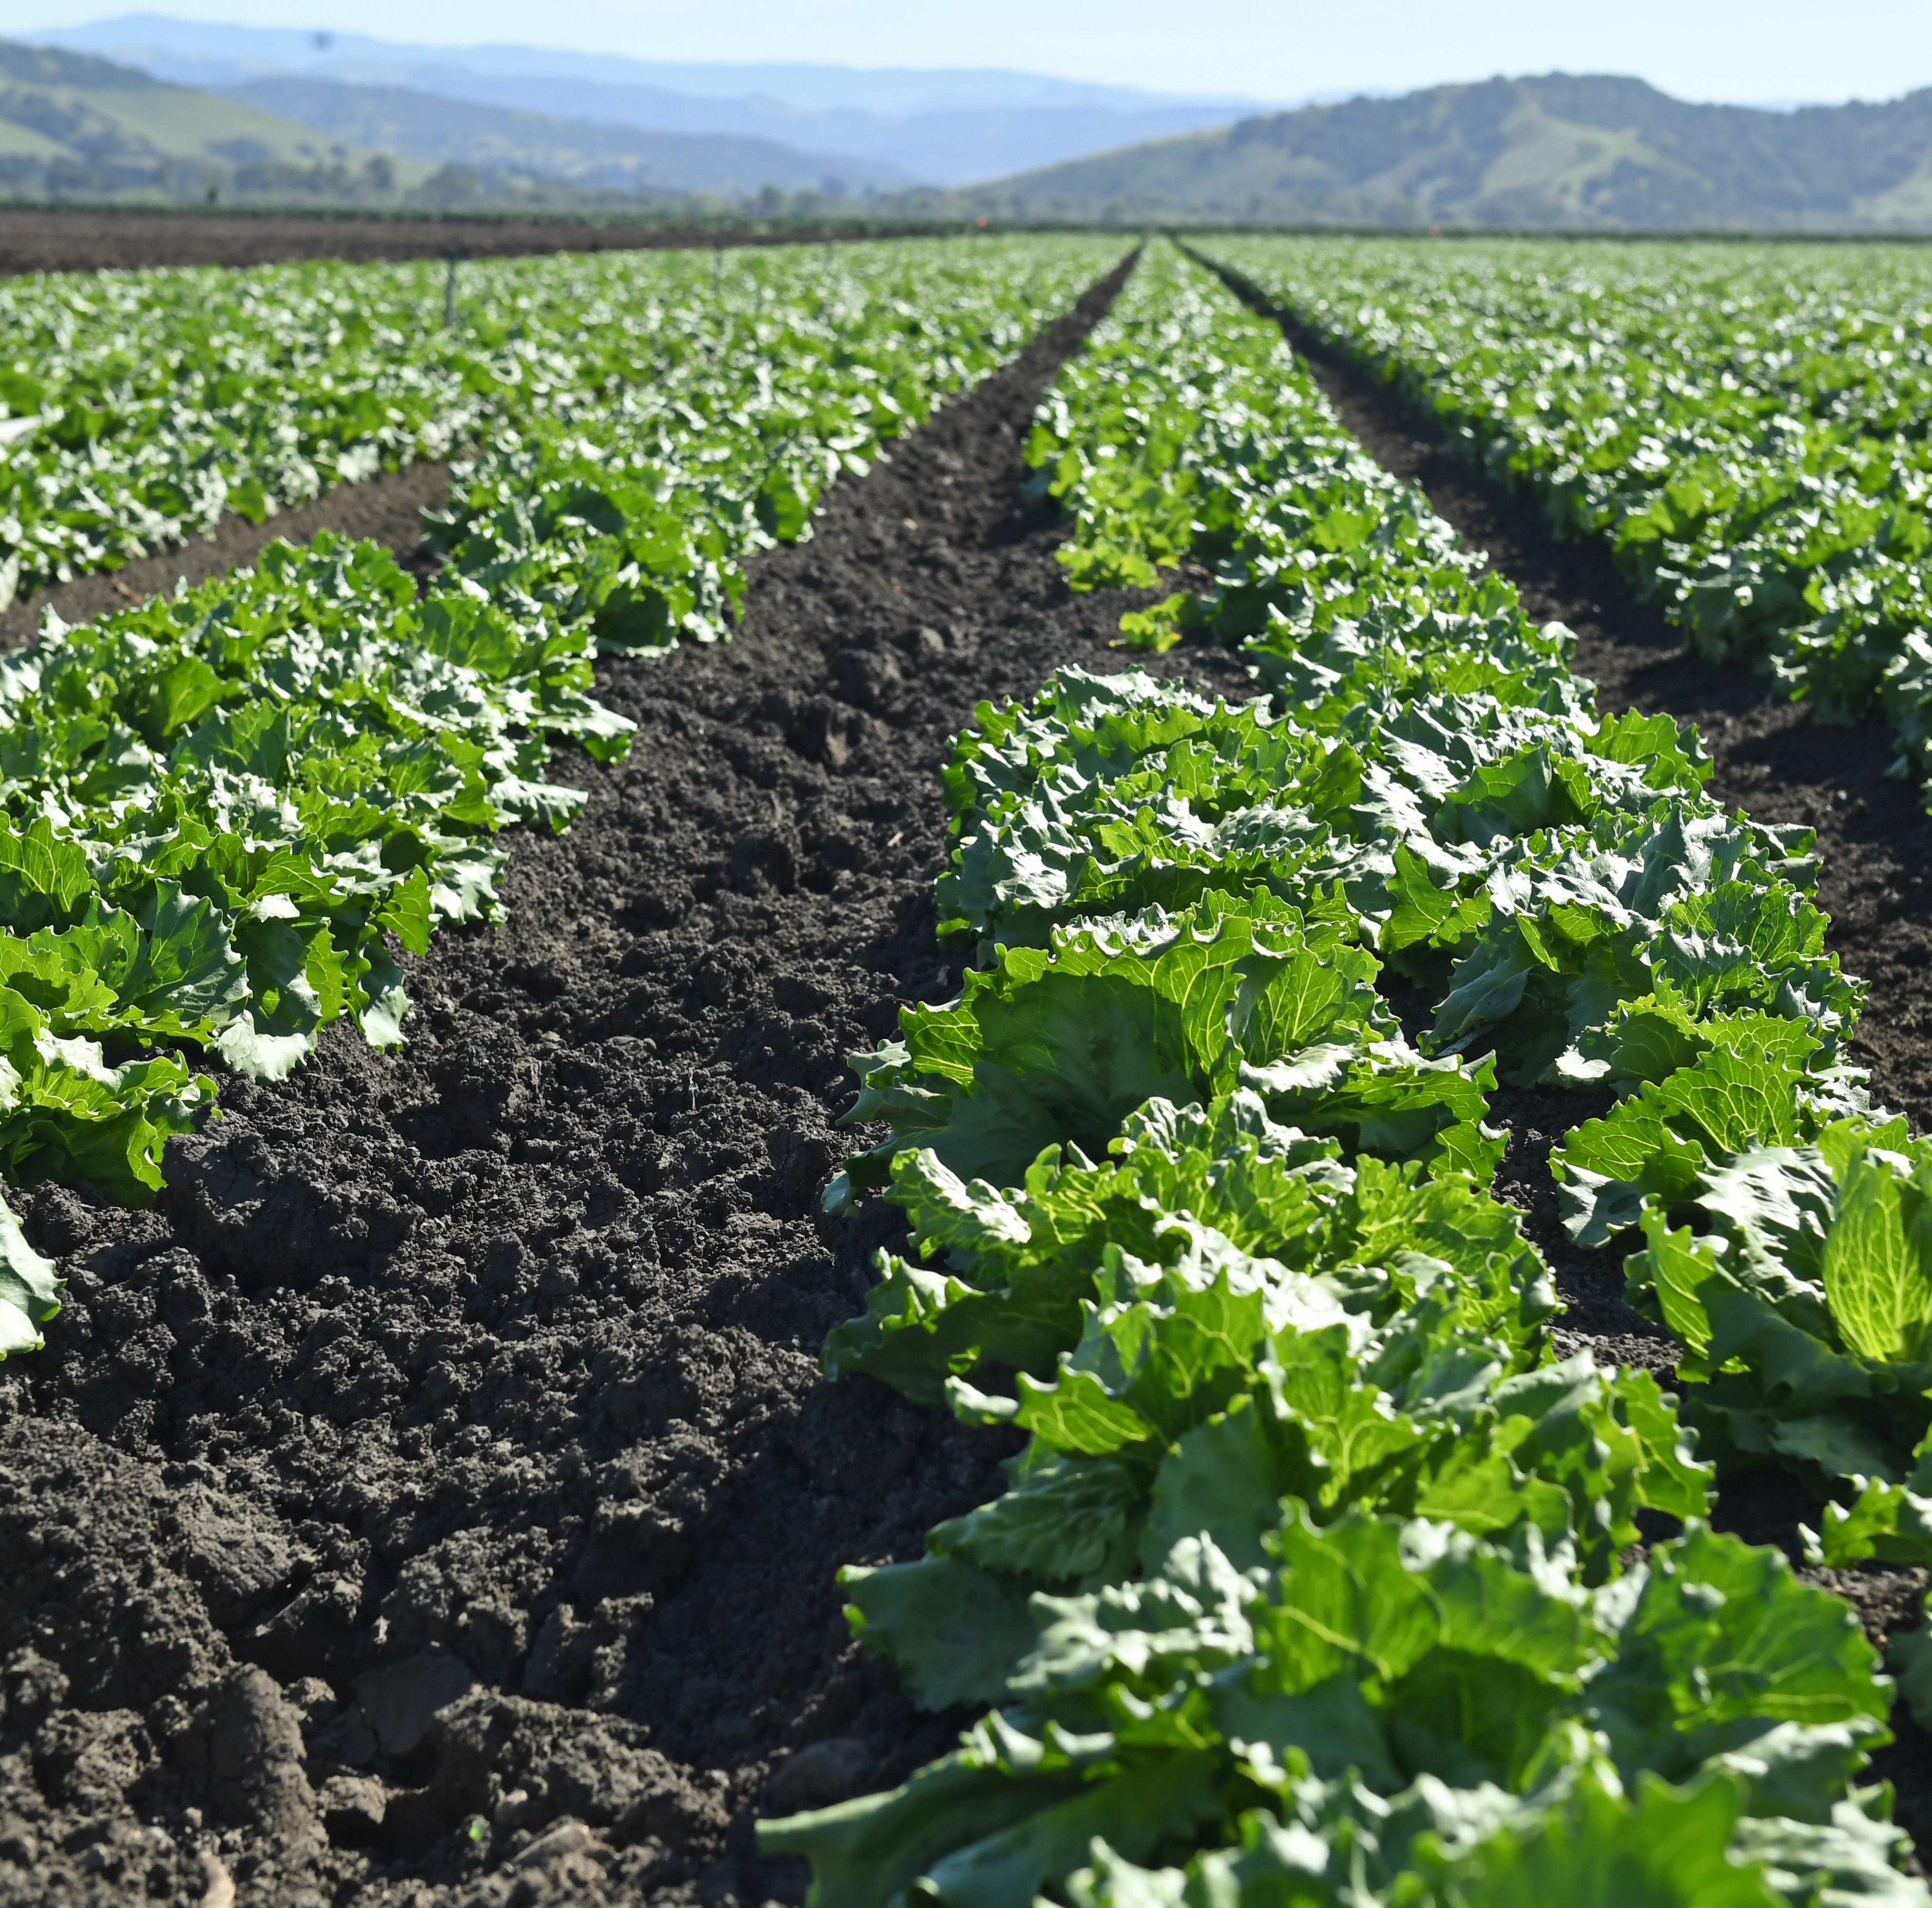 More stringent groundwater testing aims to lower risk of E.coli infections from romaine